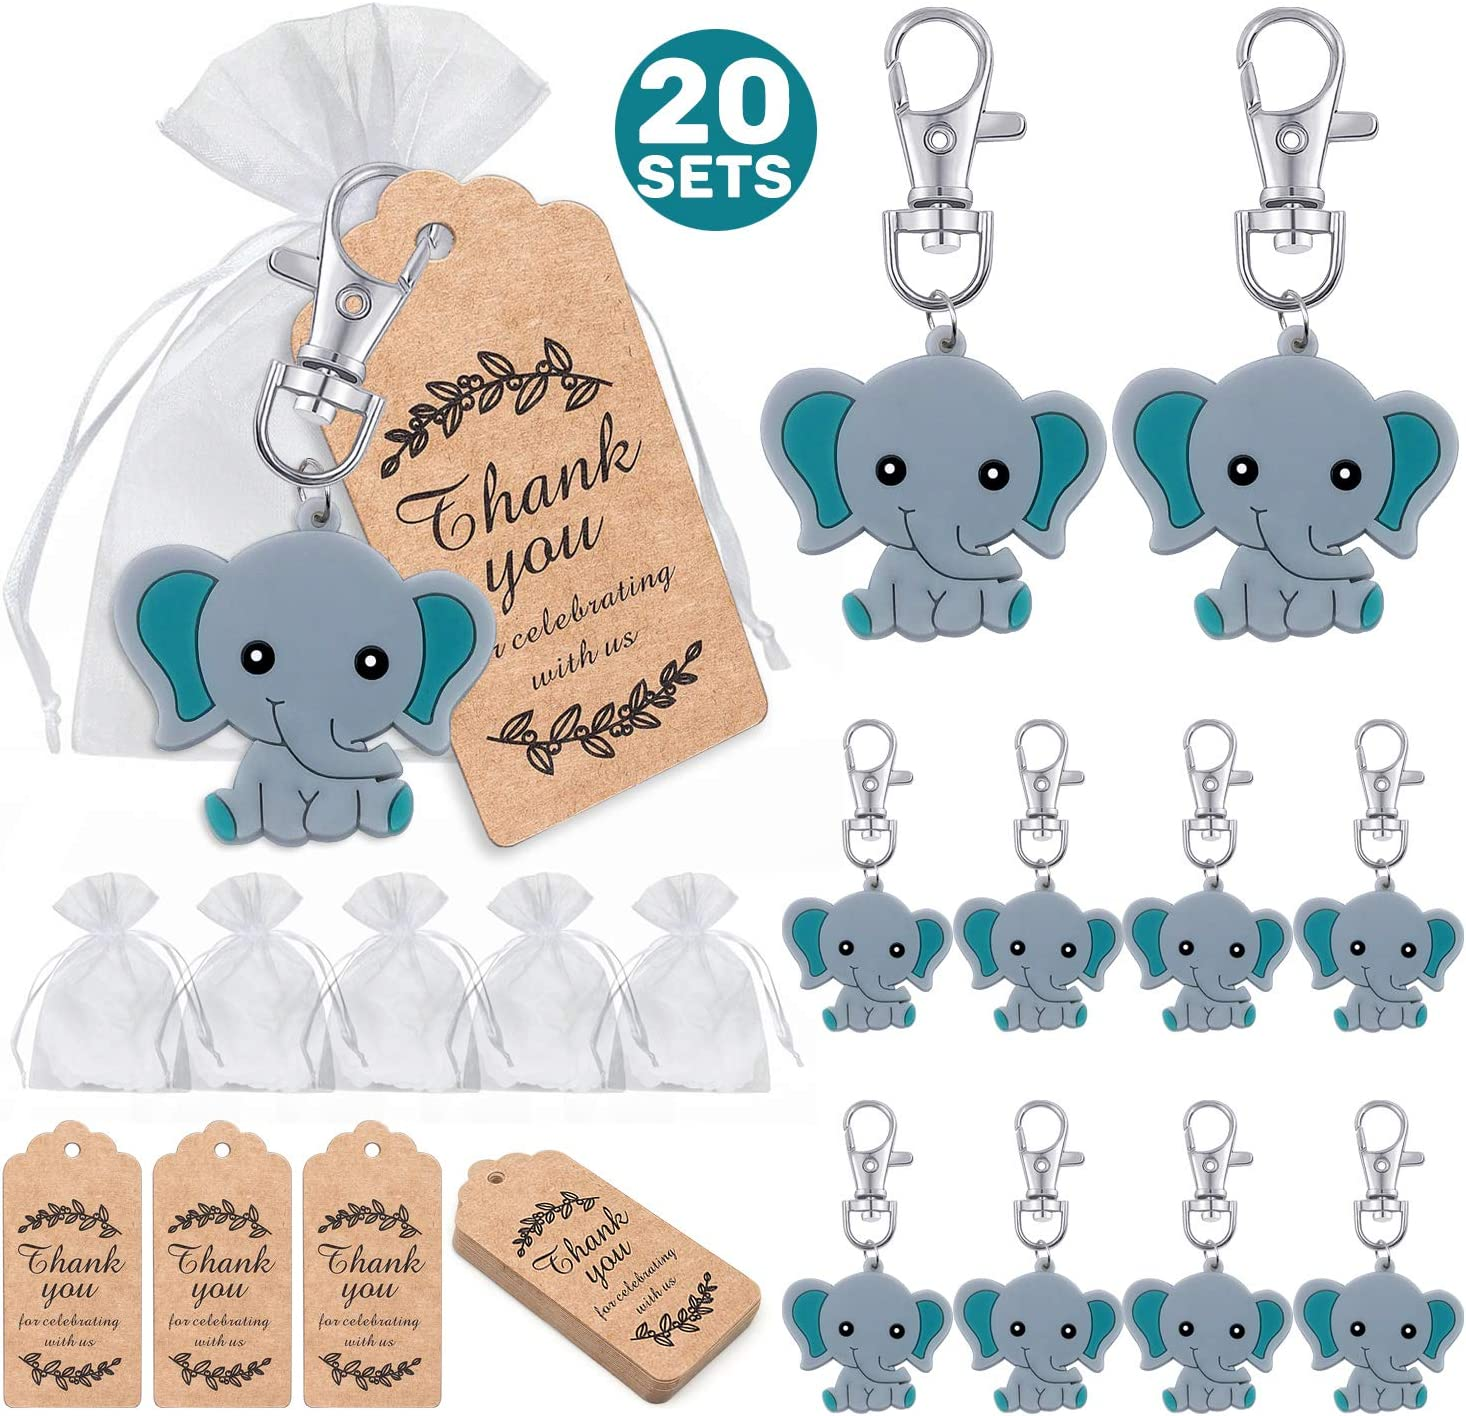 MOVINPE 20 Pcs Baby Shower Return Favors for Guests, Blue Baby Elephant Keychains + Organza Bags + Thank You Kraft Tags for Elephant Theme Party Favors, Boys Kids Birthday Party Supplies